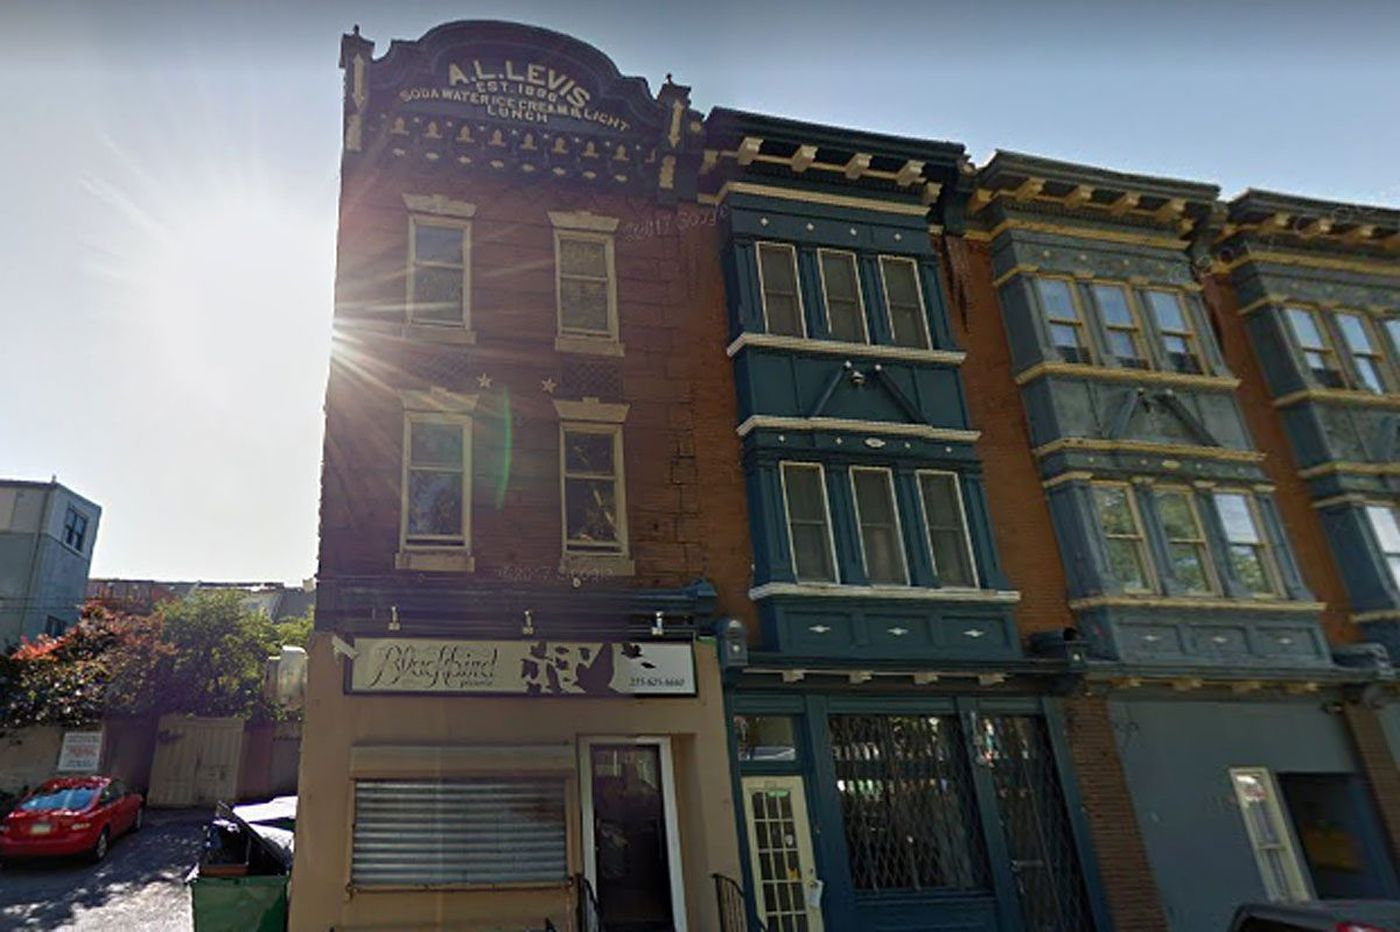 Blackbird Pizzeria is forced to close temporarily as landmark building needs repairs